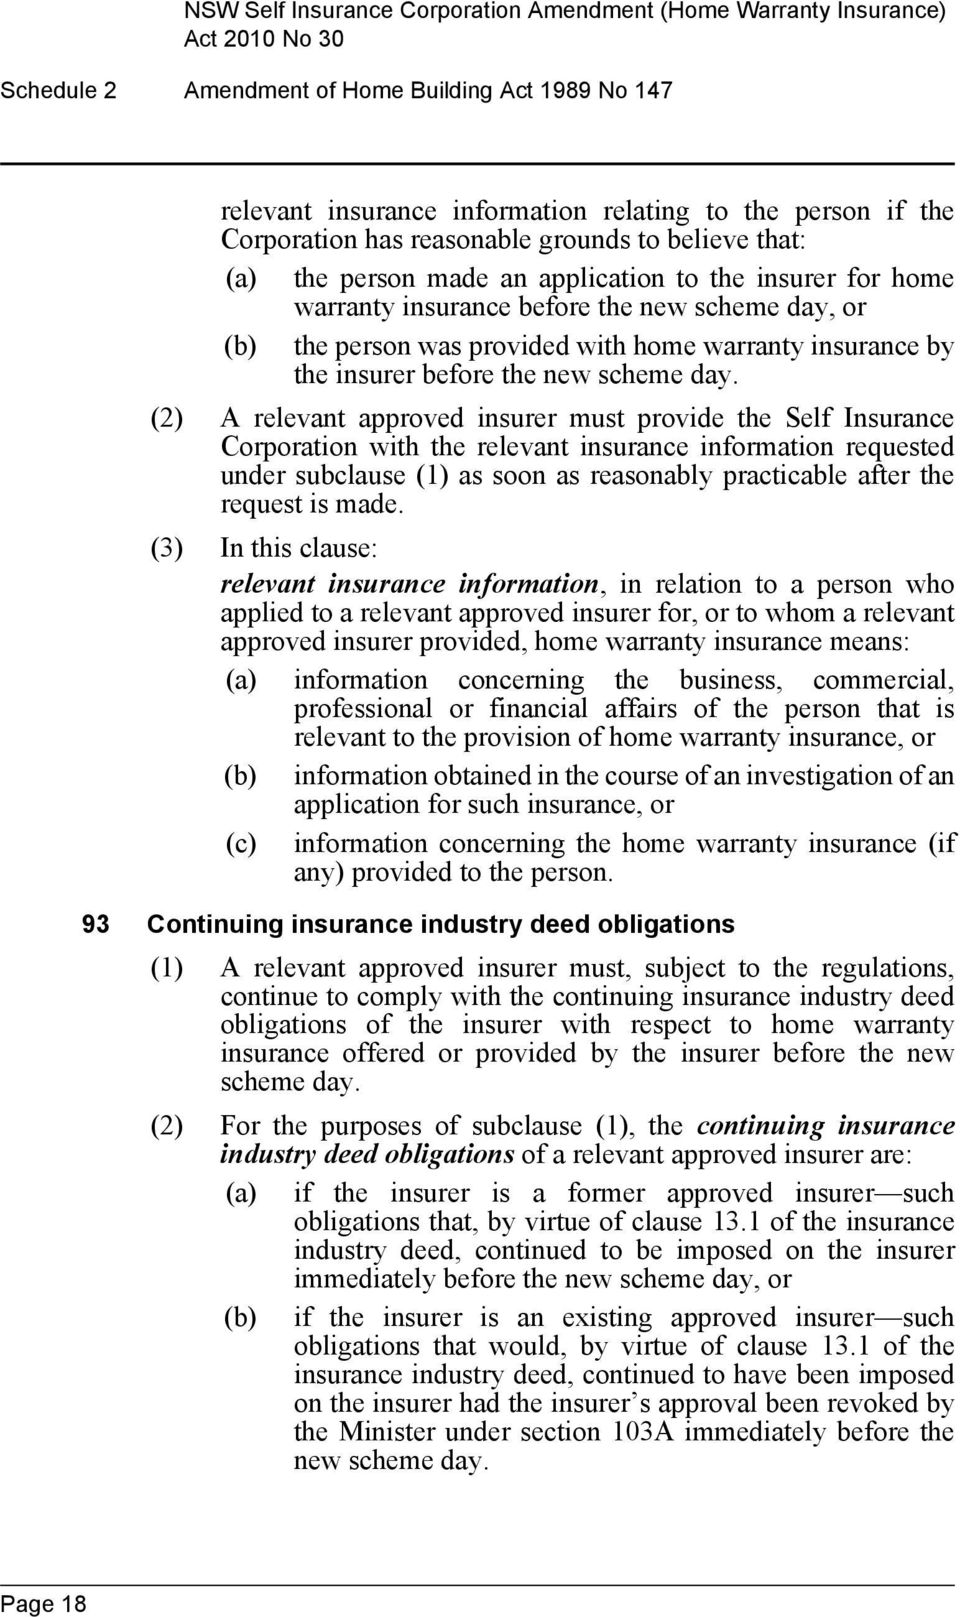 (2) A relevant approved insurer must provide the Self Insurance Corporation with the relevant insurance information requested under subclause (1) as soon as reasonably practicable after the request